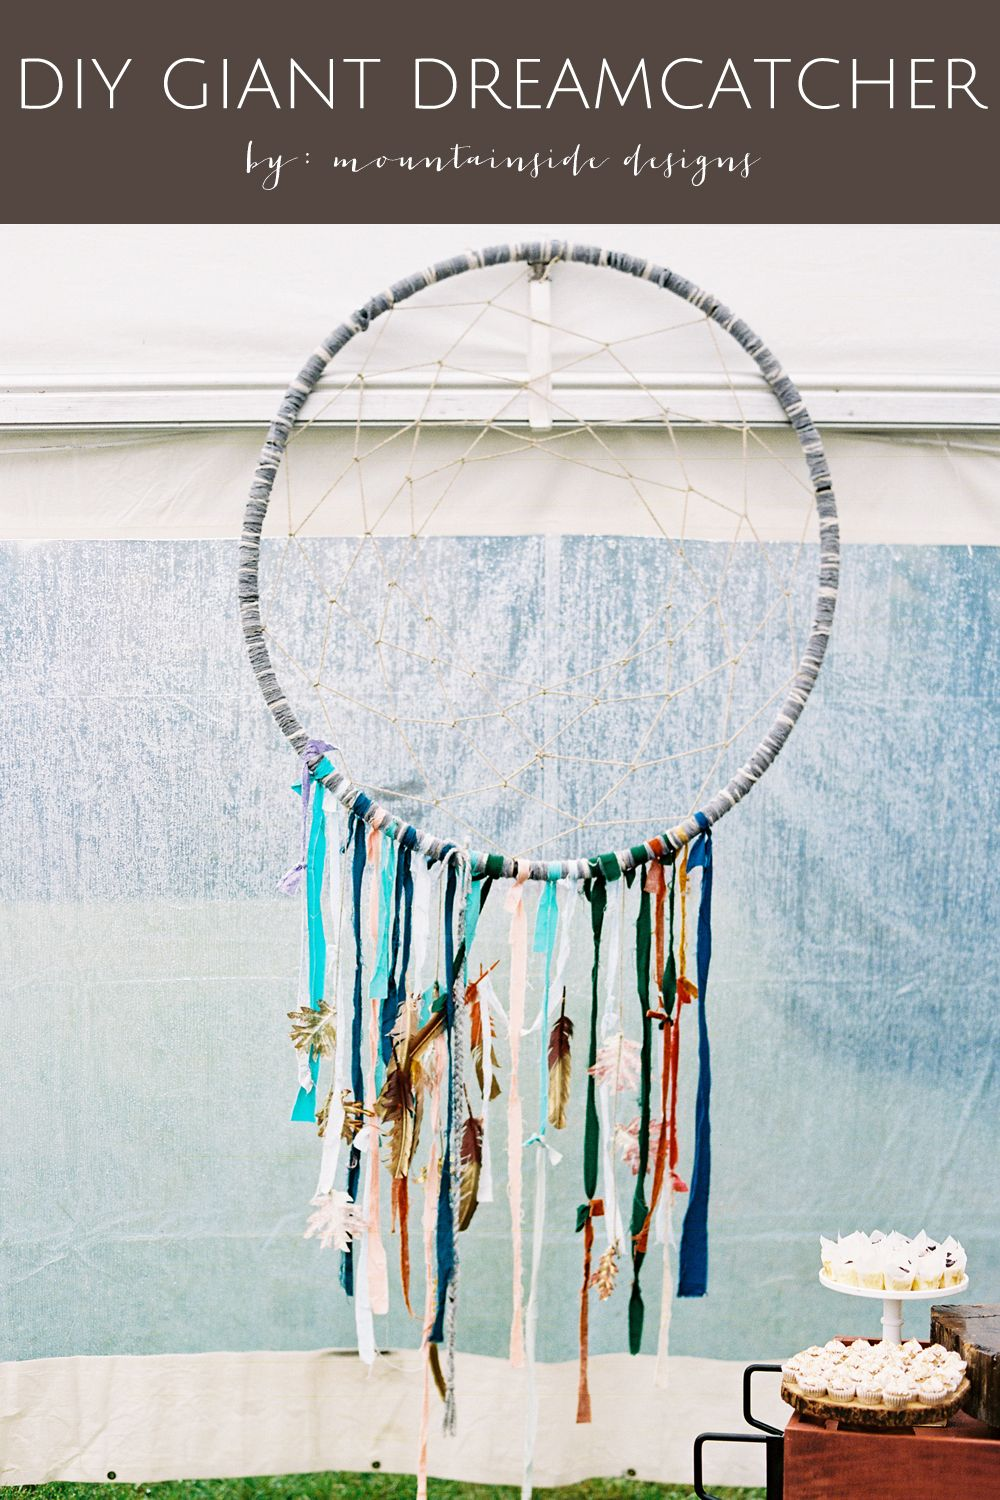 How To Make A Big Dream Catcher DIY Giant Dreamcatcher Tutorial Giant dream catcher Hula hoop 25